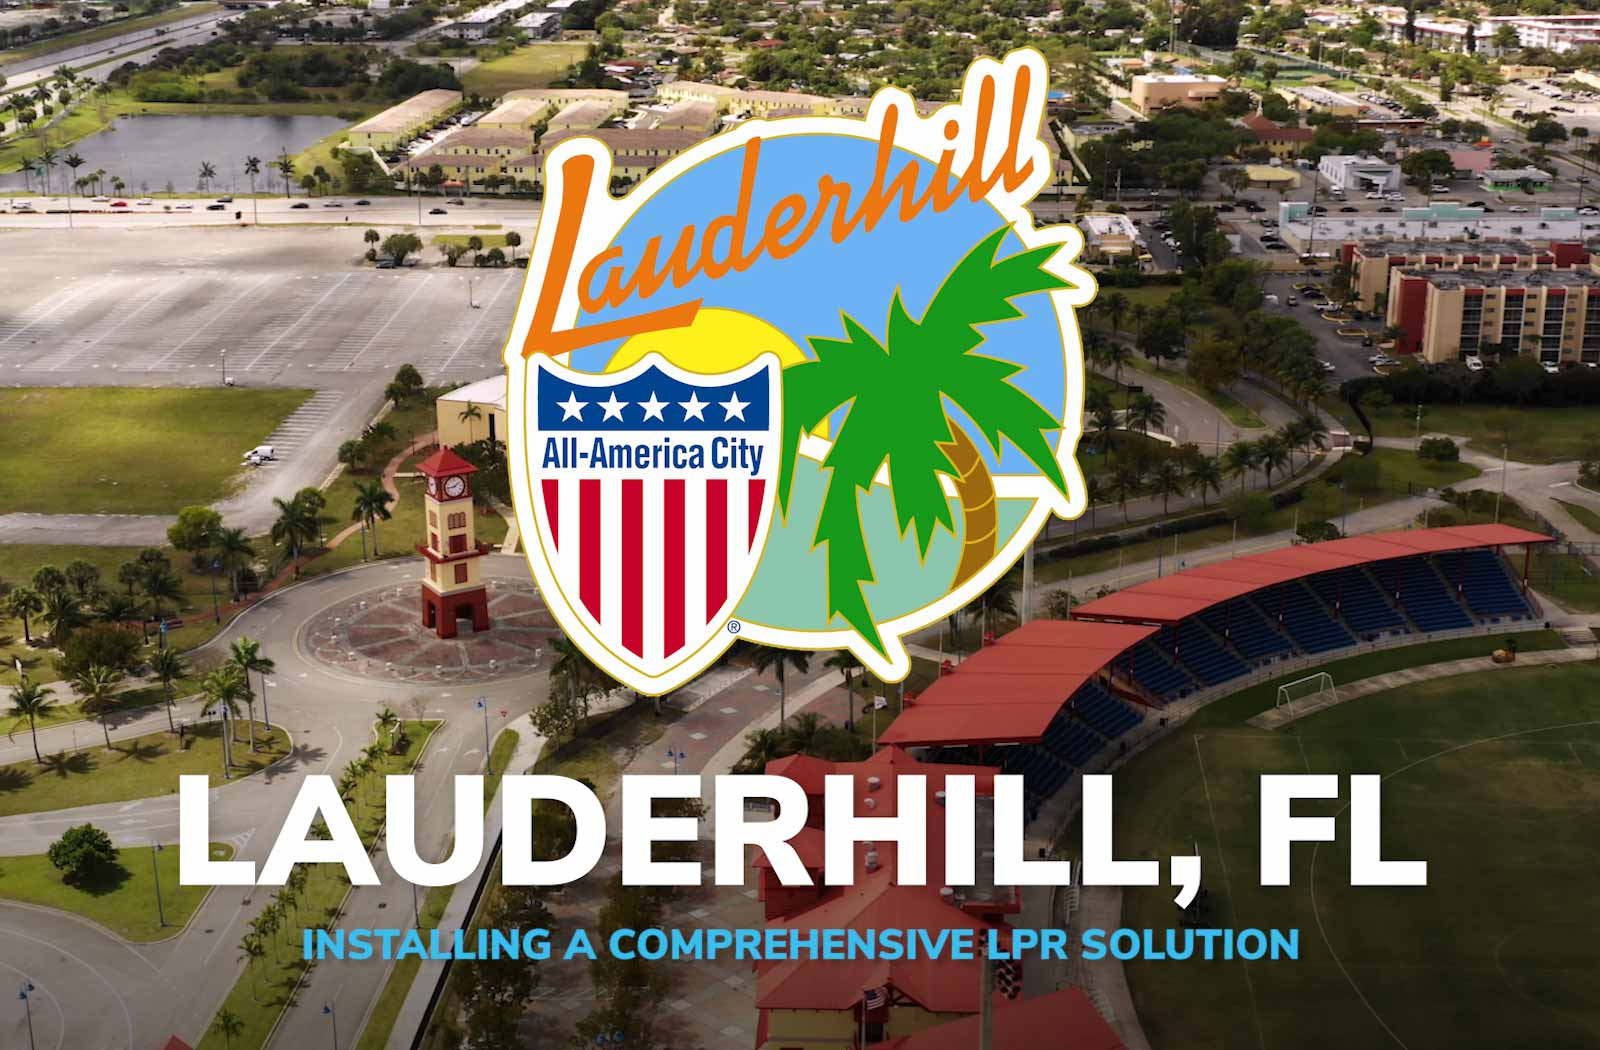 Lauderhill Florida video thumbnail